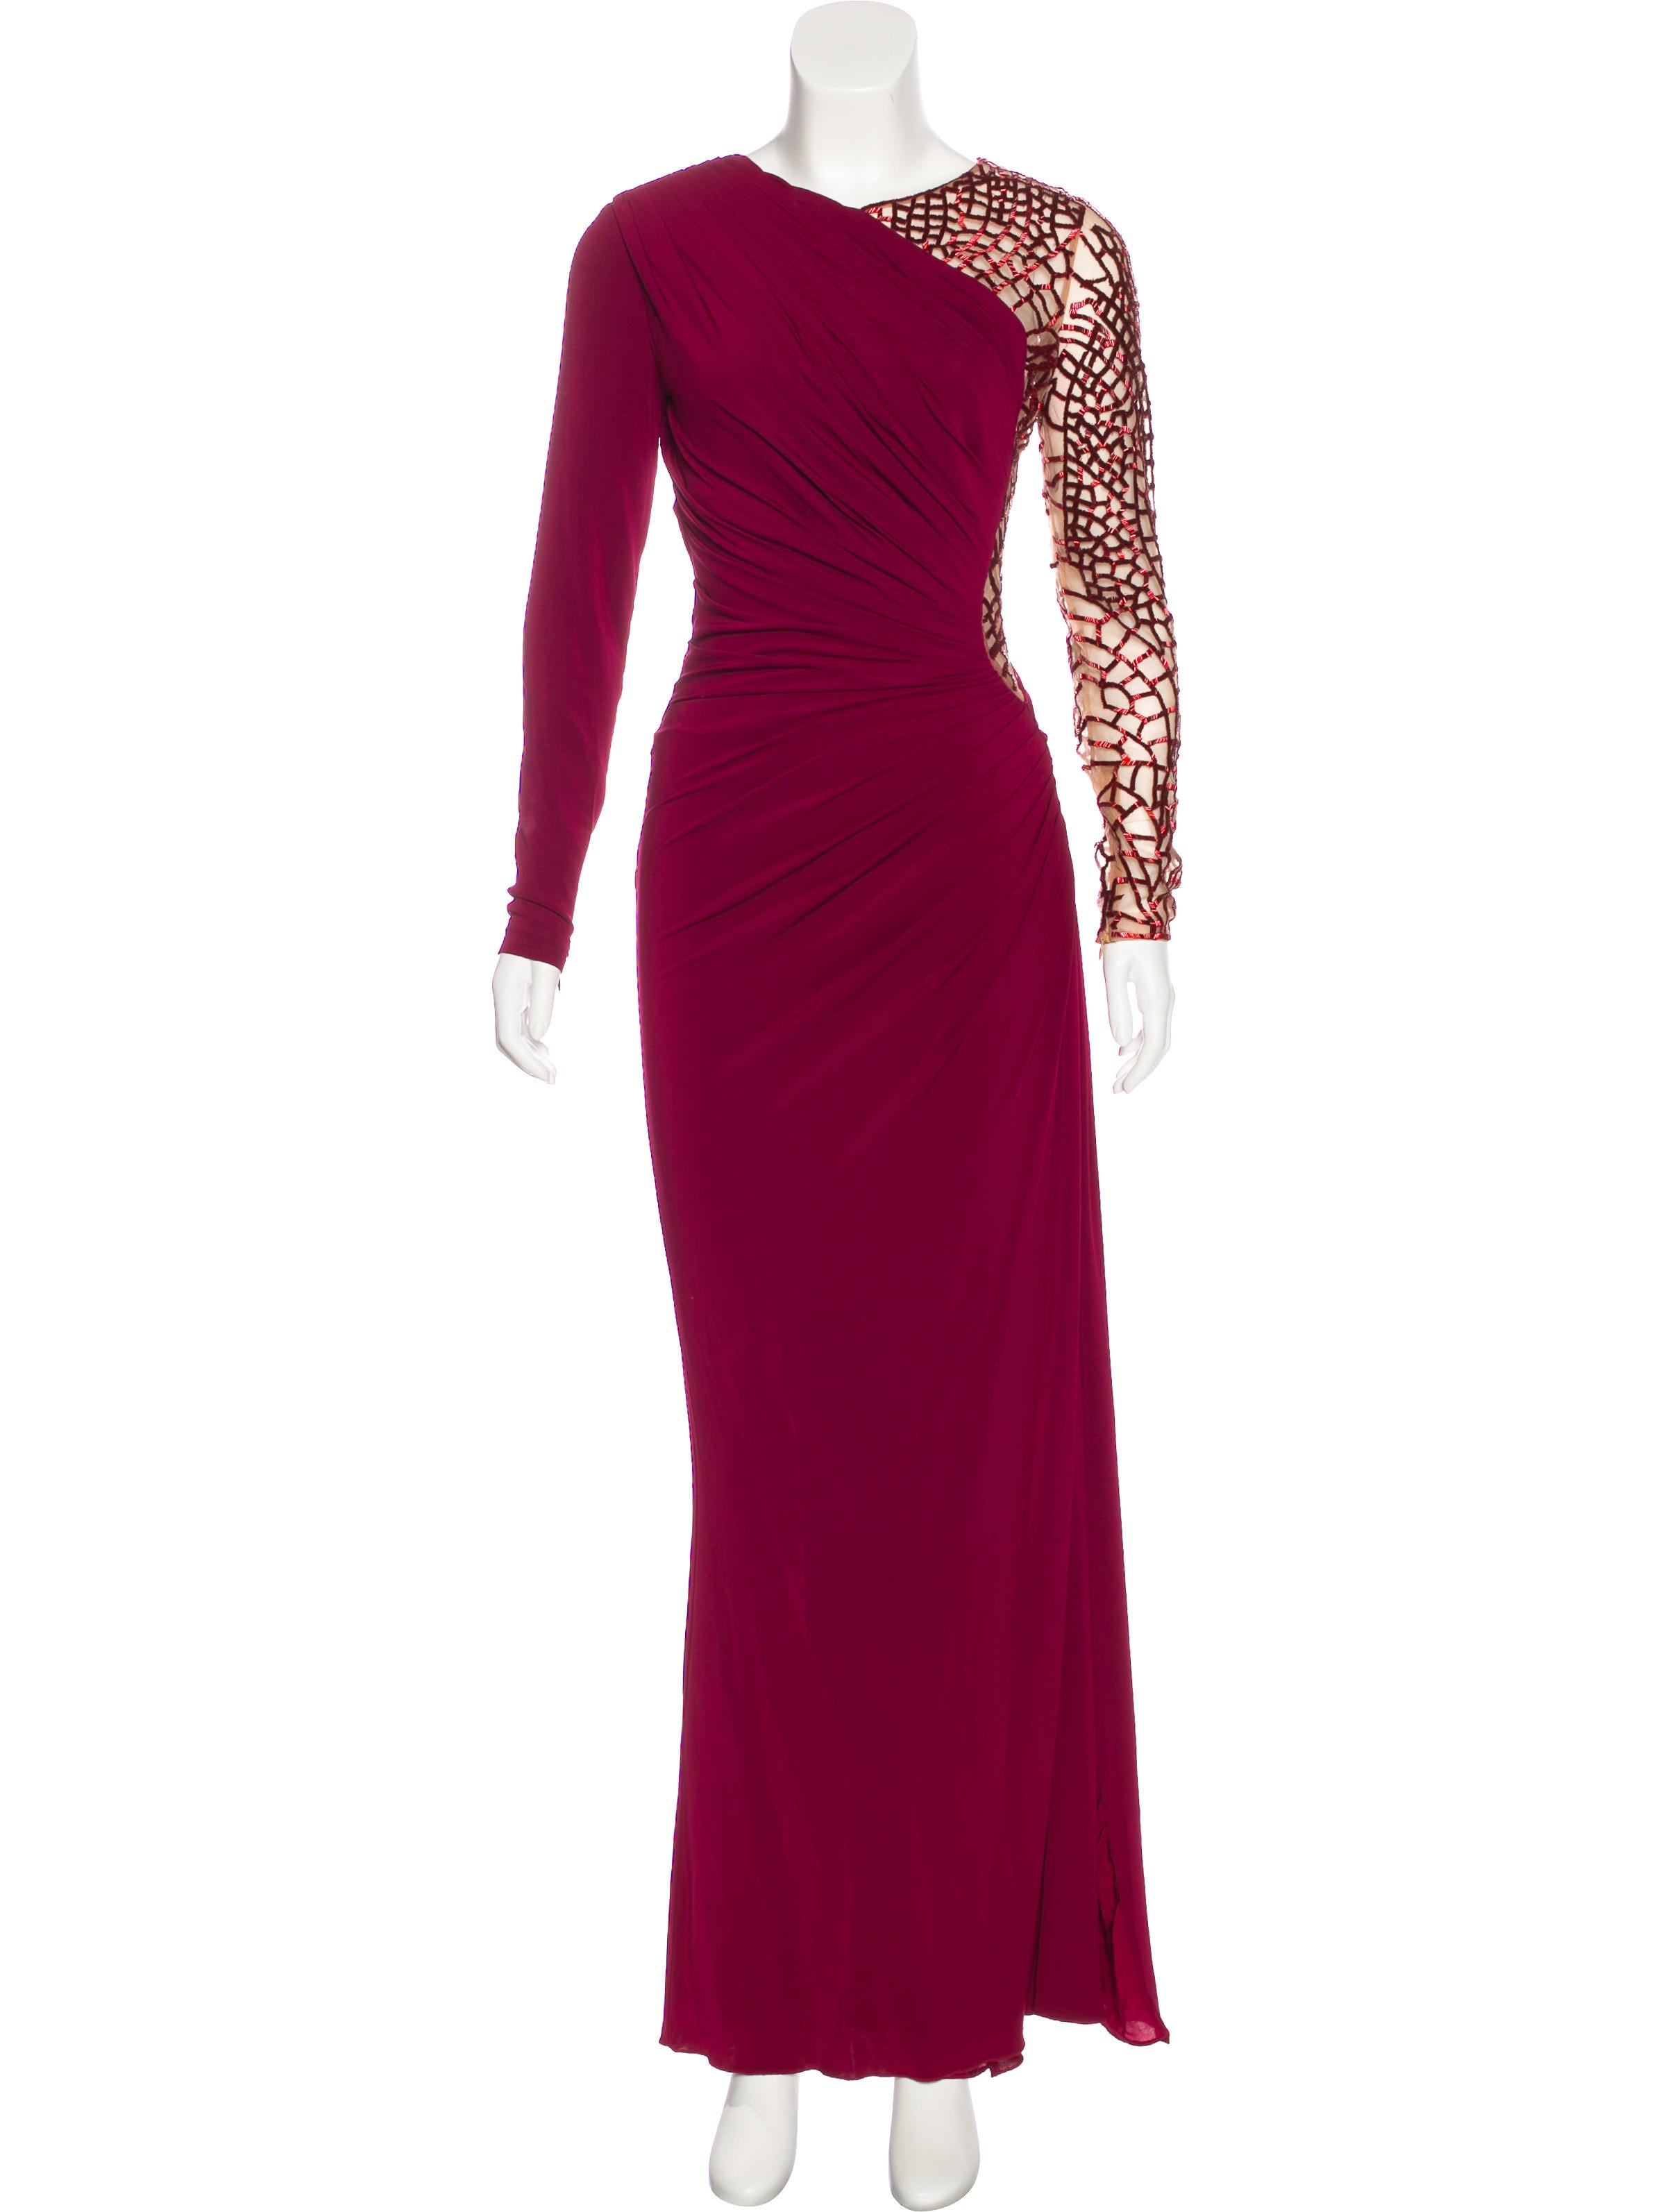 Zuhair Murad Embellished Draped Gown - Clothing - ZUH20112   The ...